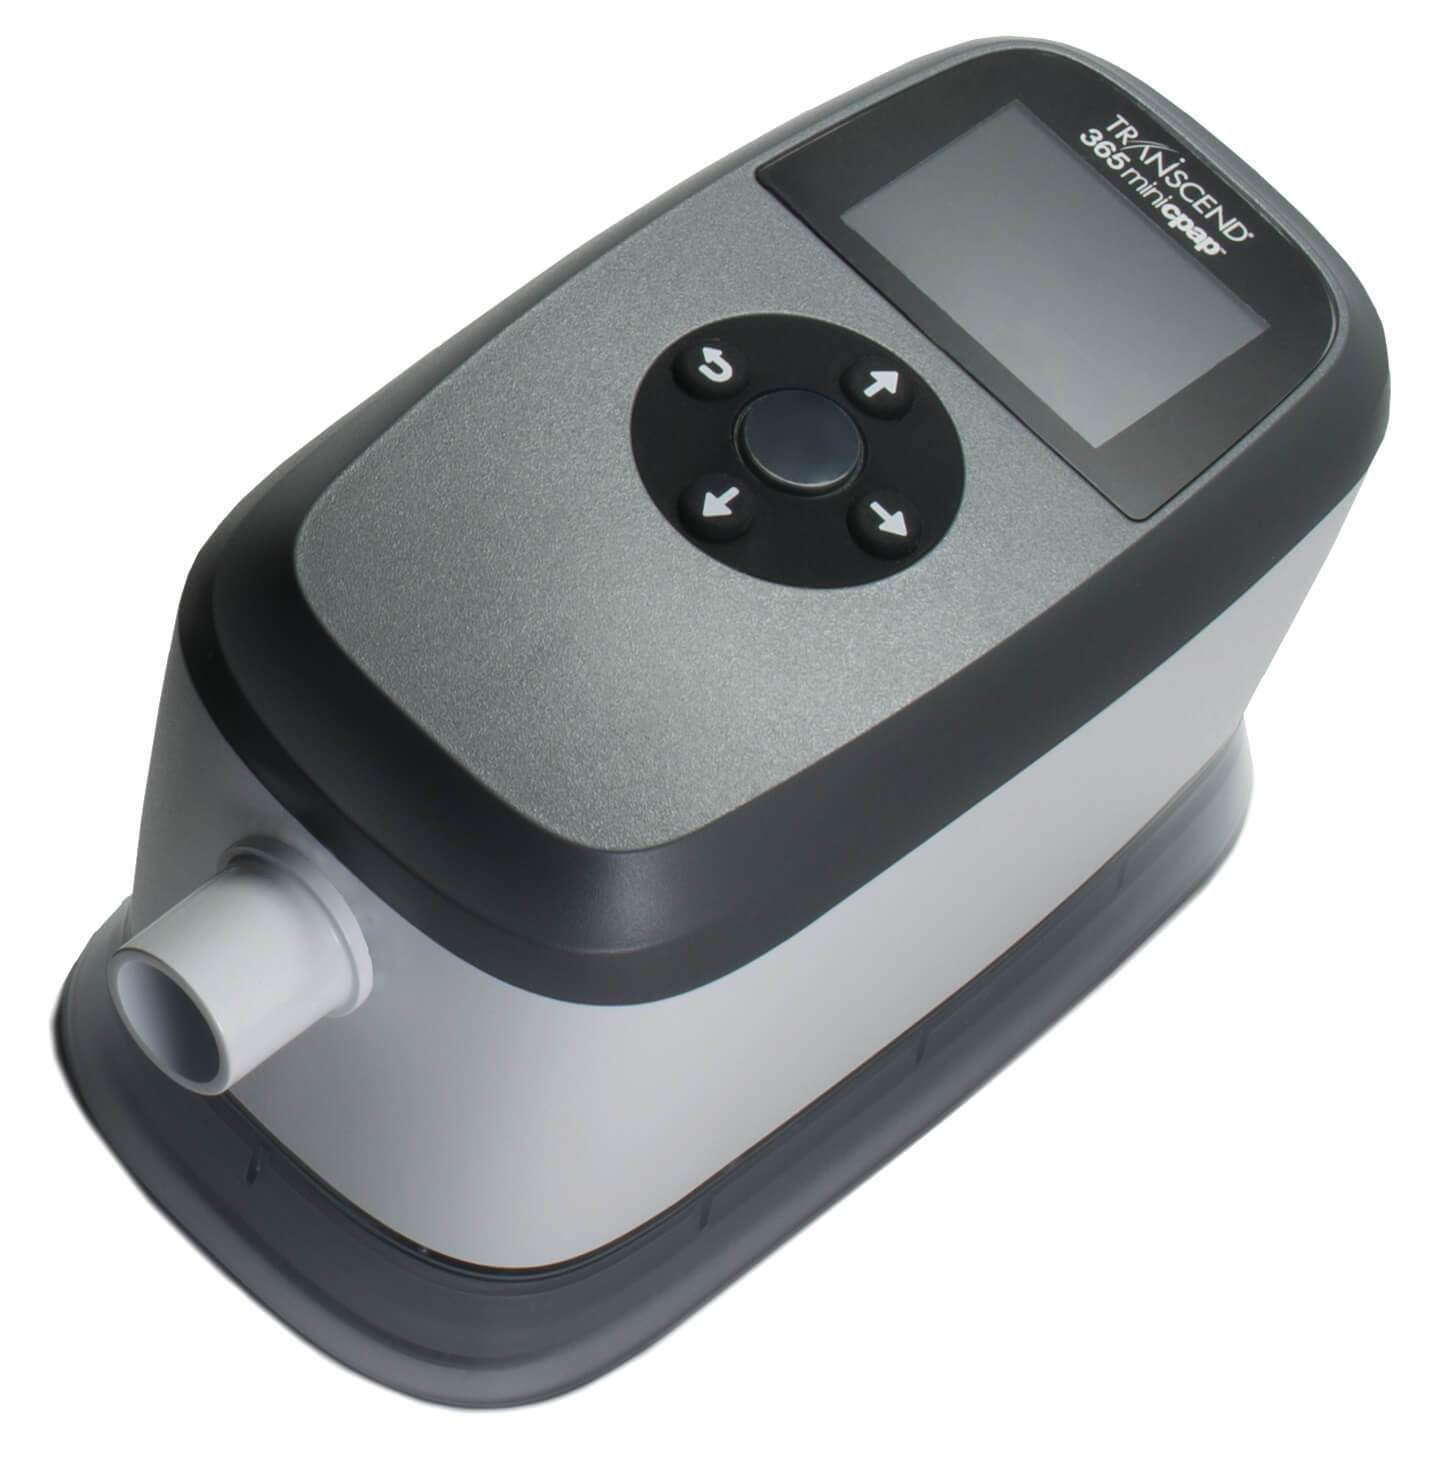 Transcend 365 Auto Cpap With Heated Humidifier